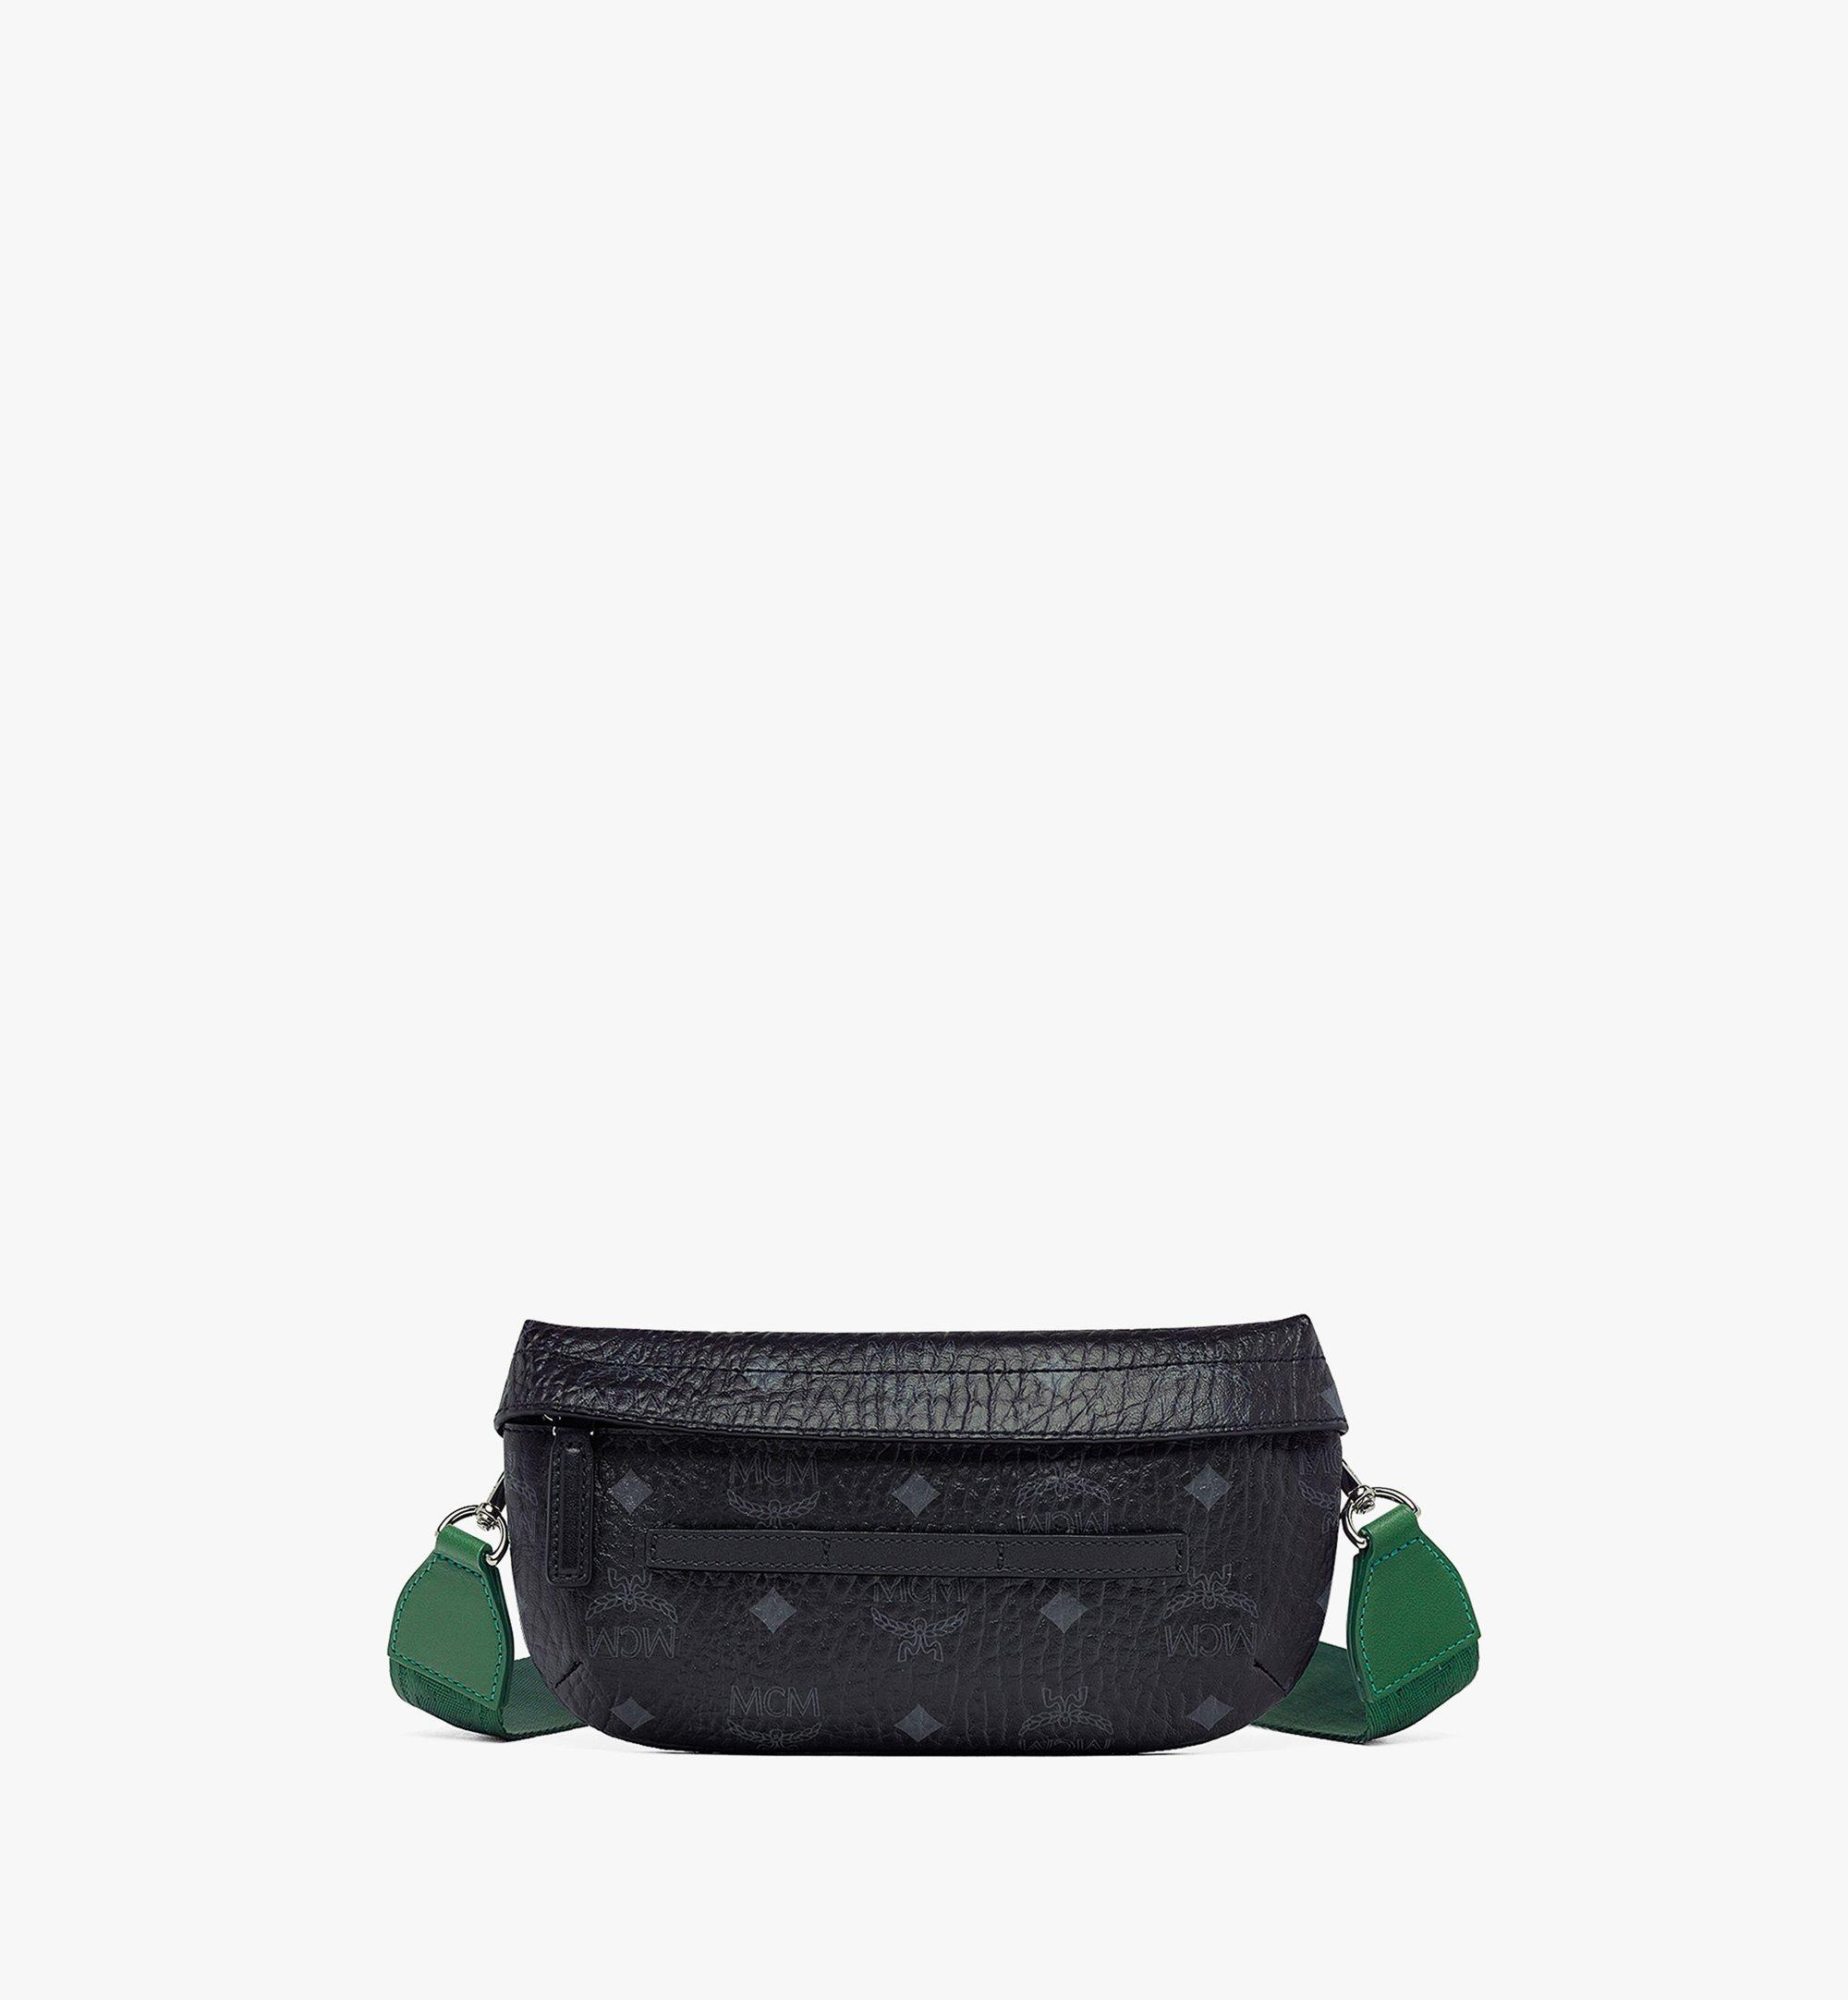 MCM Upcycling Project Crossbody in Visetos Green MMRBSUP01GR001 Alternate View 1